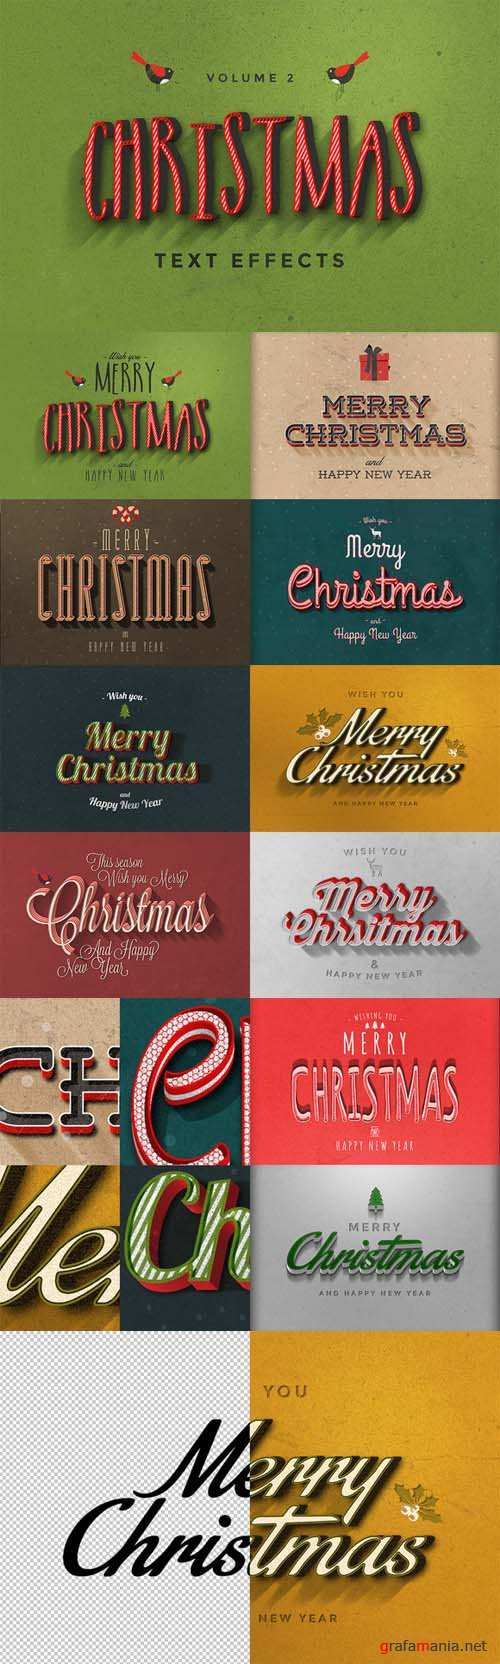 Christmas Text Effects Vol 2